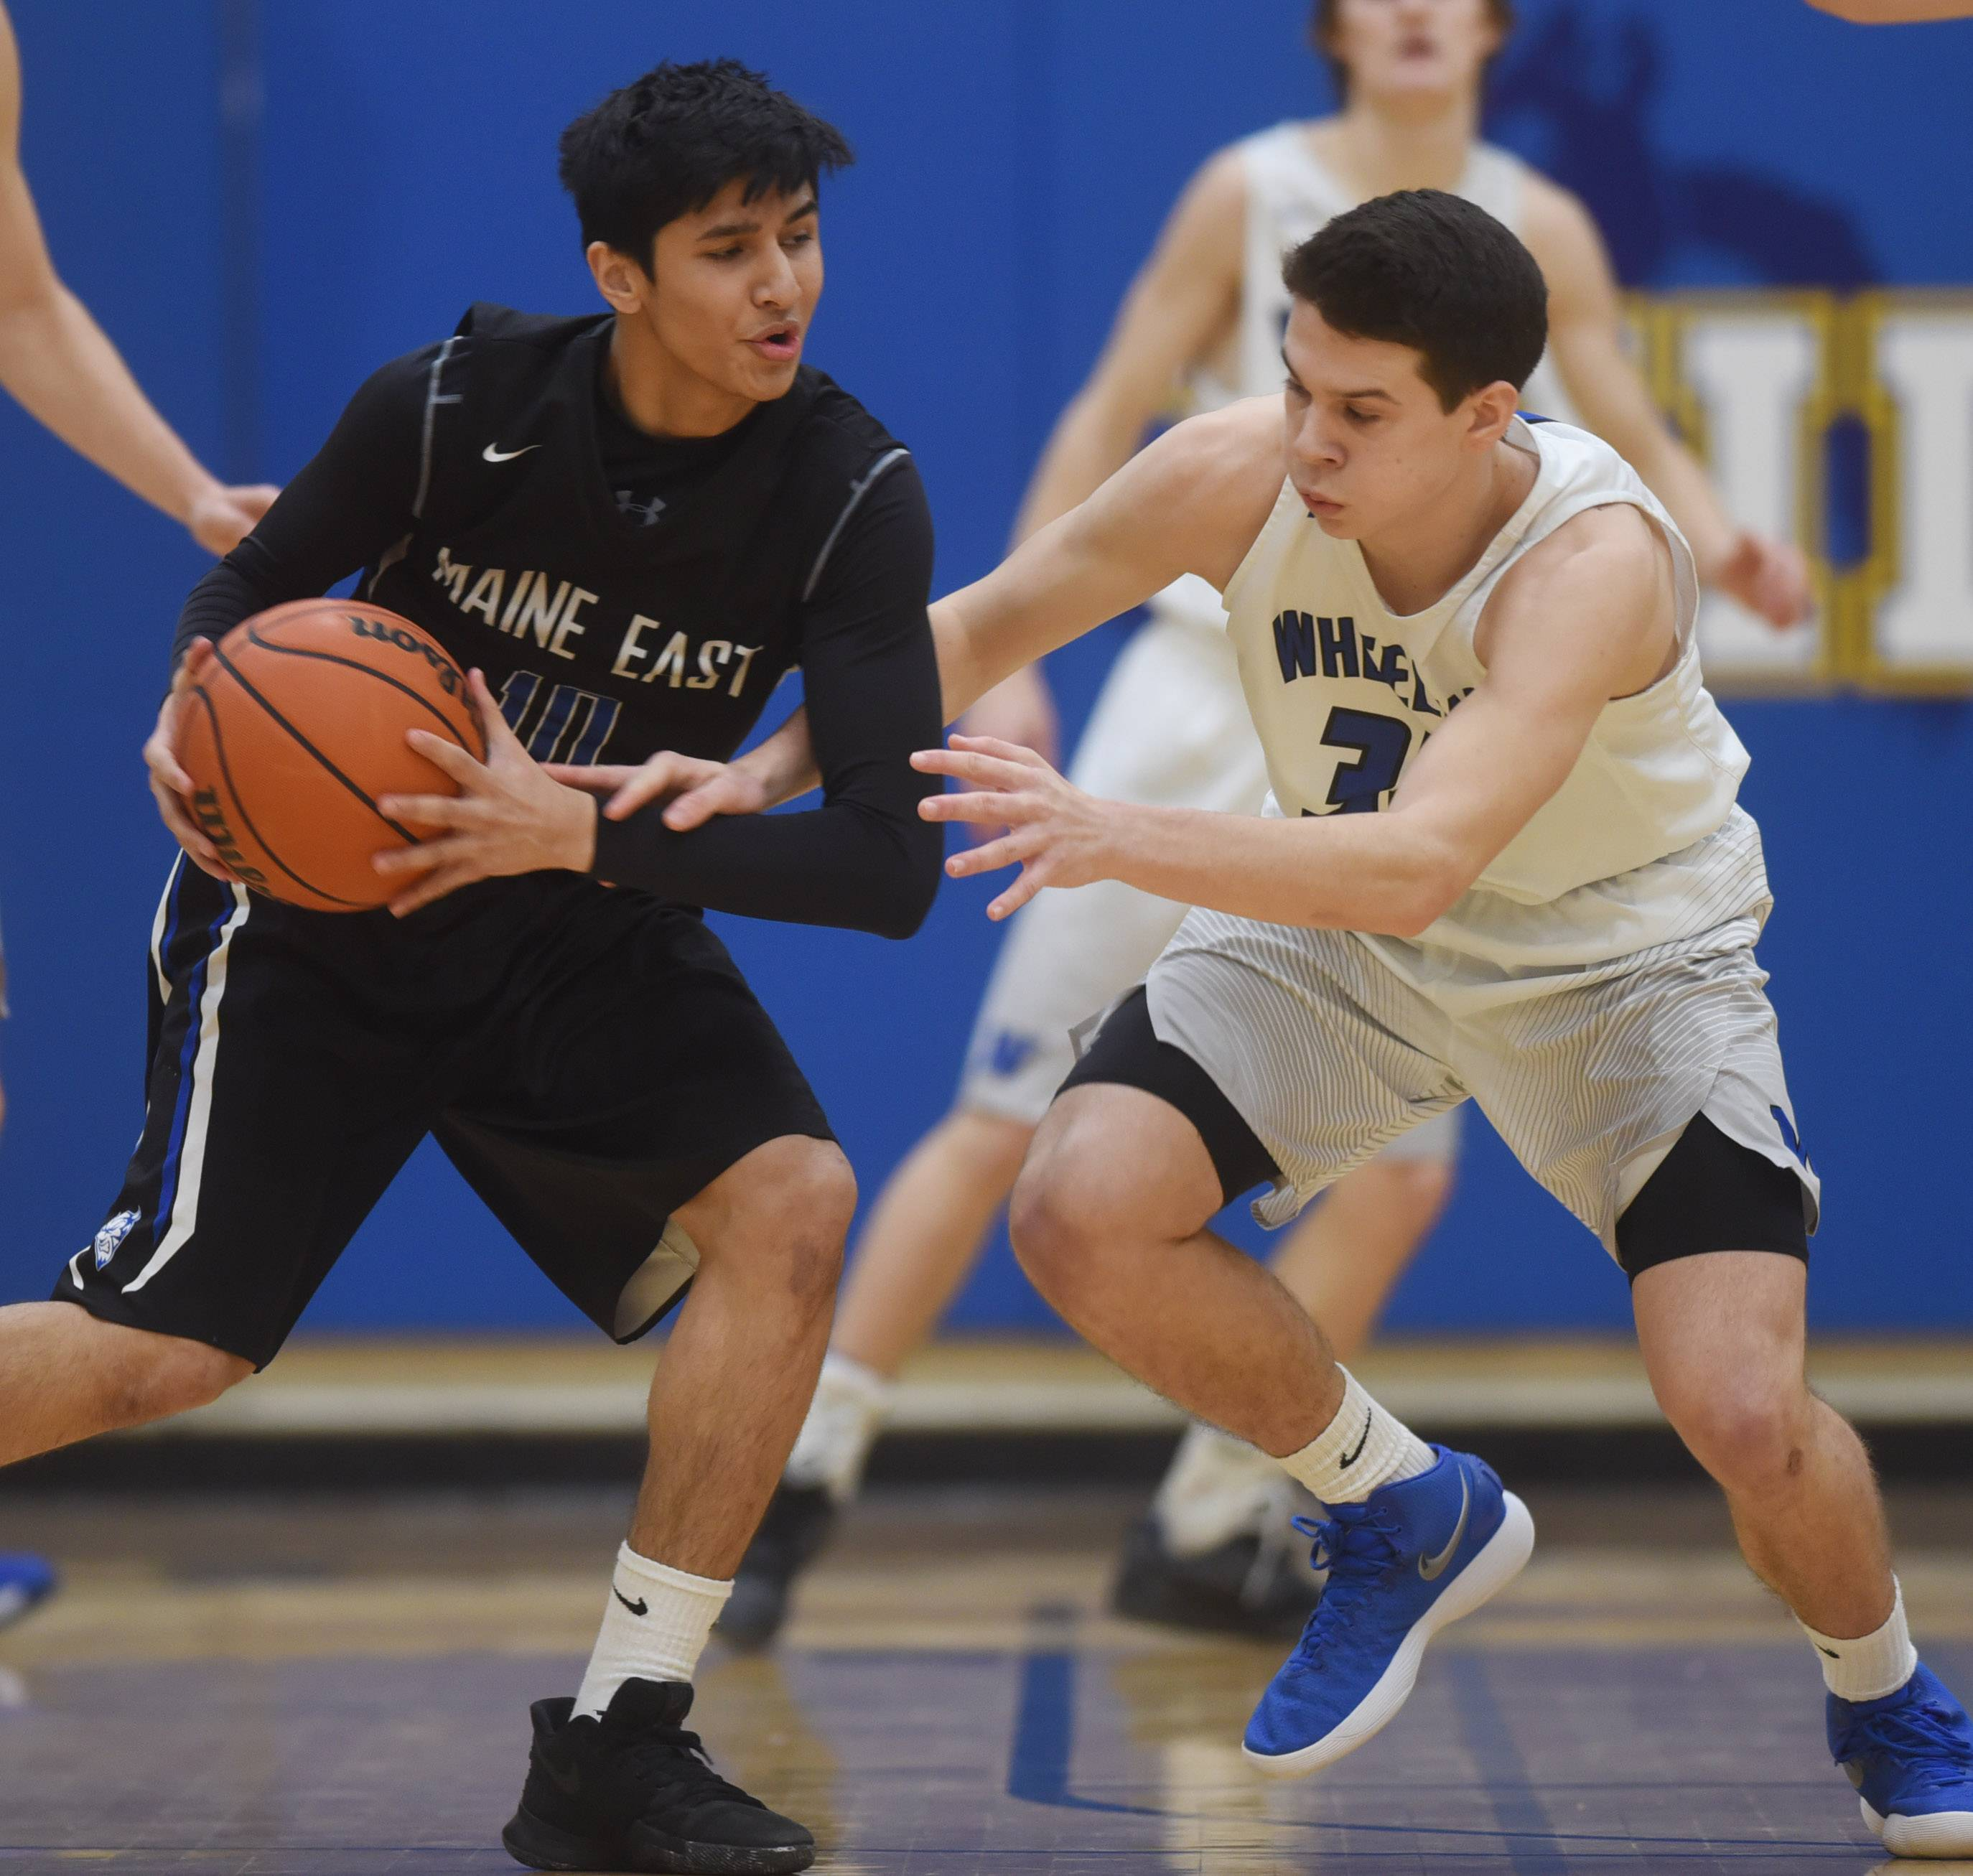 Wheeling's Brandon Zettek, right, closely guards Maine East's Justice Shaw during Tuesday's game at Wheeling.